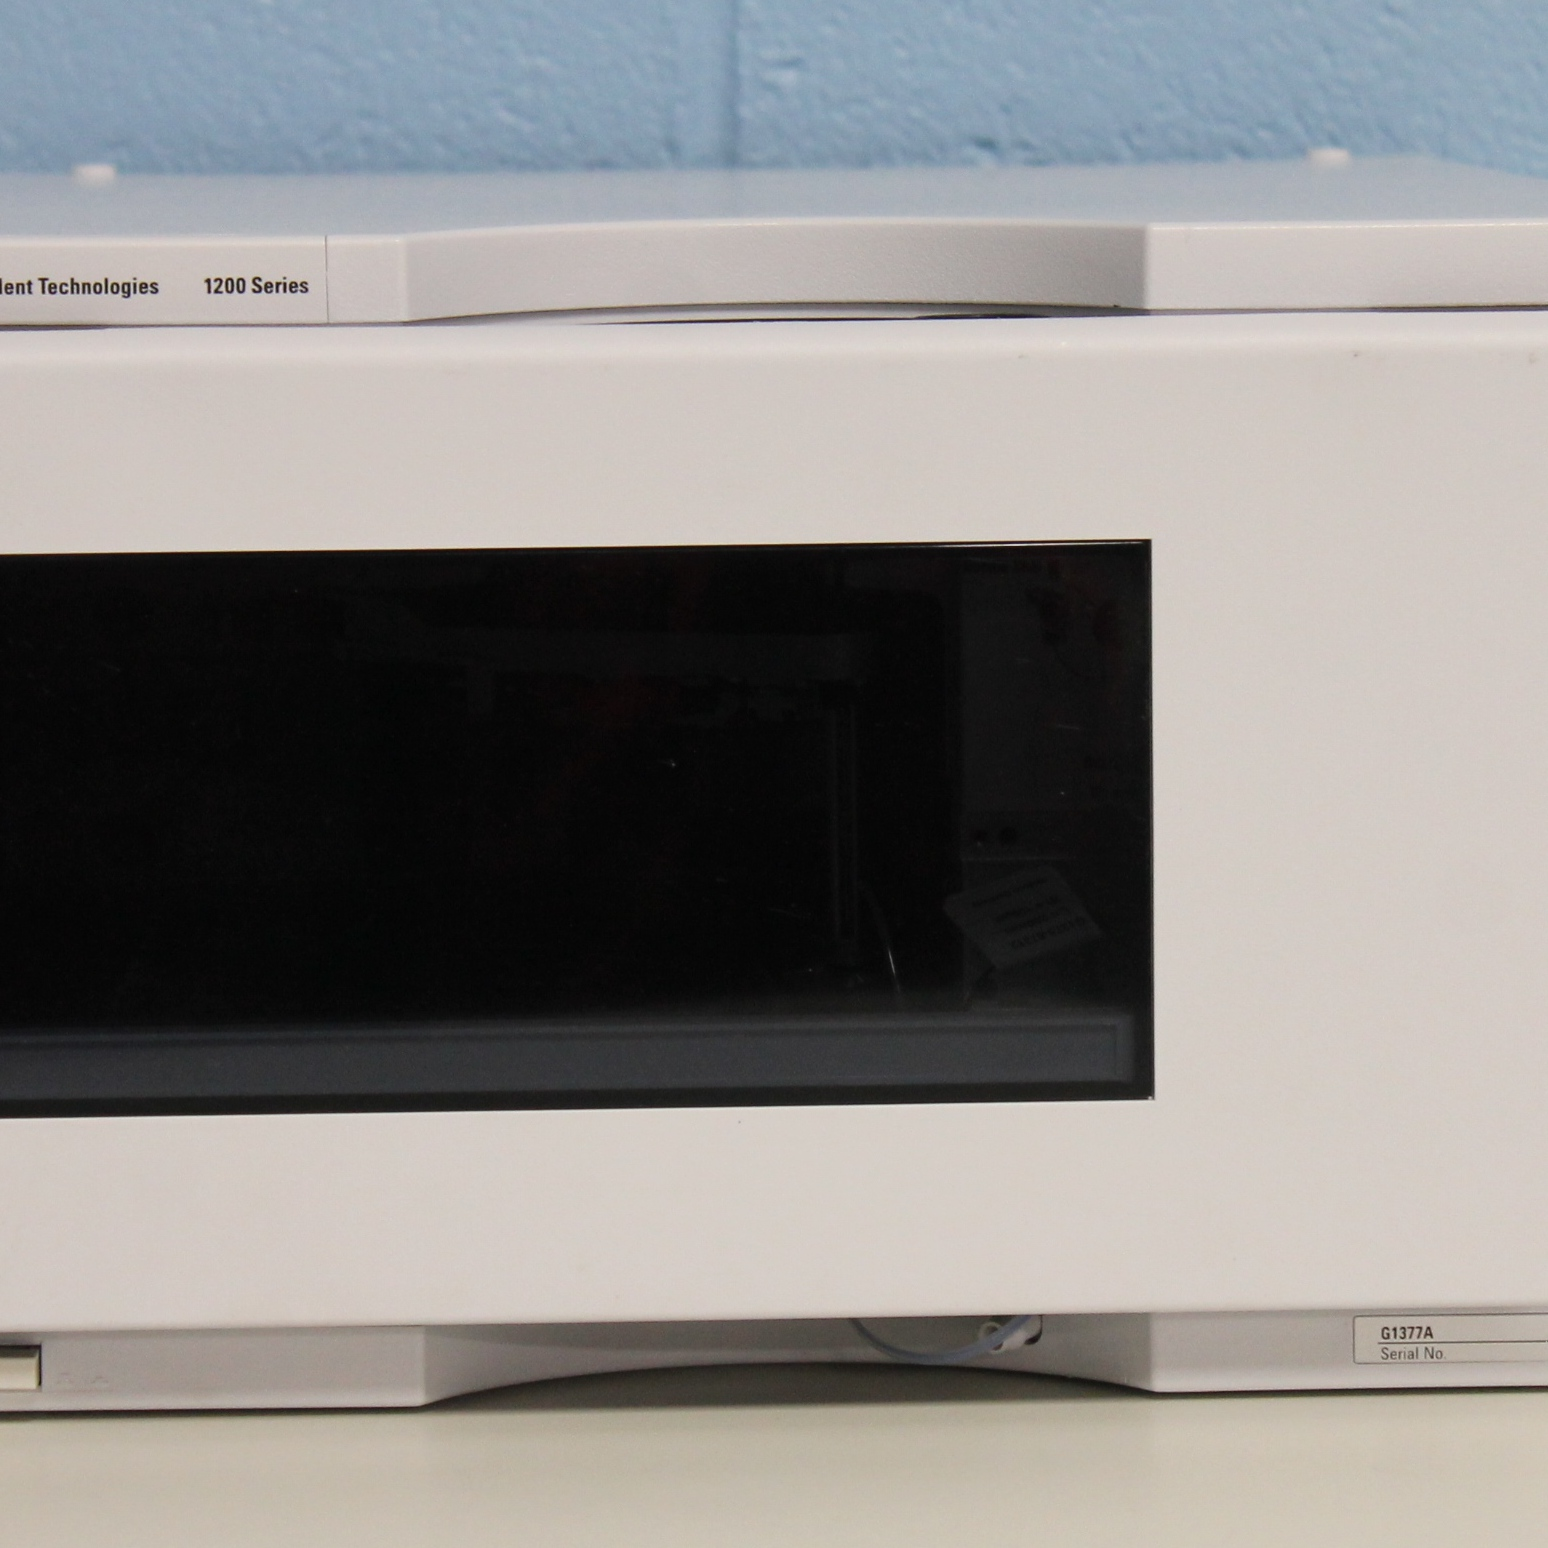 Agilent Technologies 1200 Series G1377A Micro-WPS Image